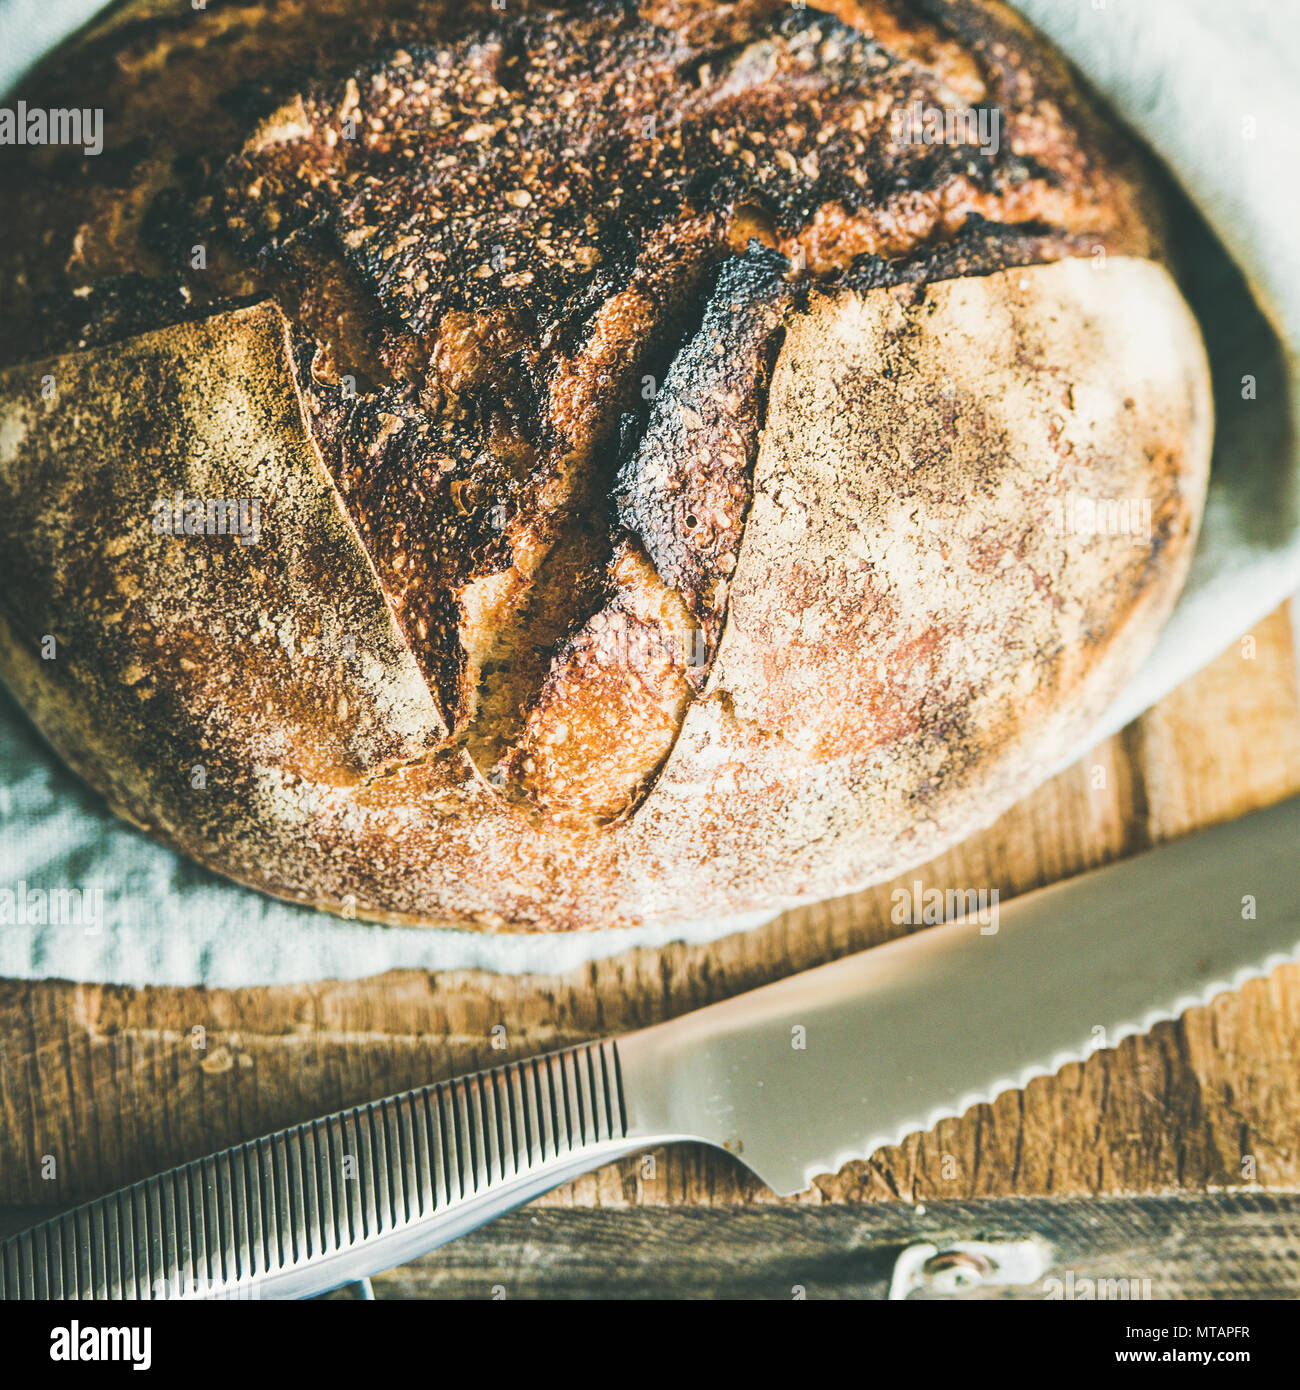 Freshly baked sourdough bread on chopping board, square crop Stock Photo